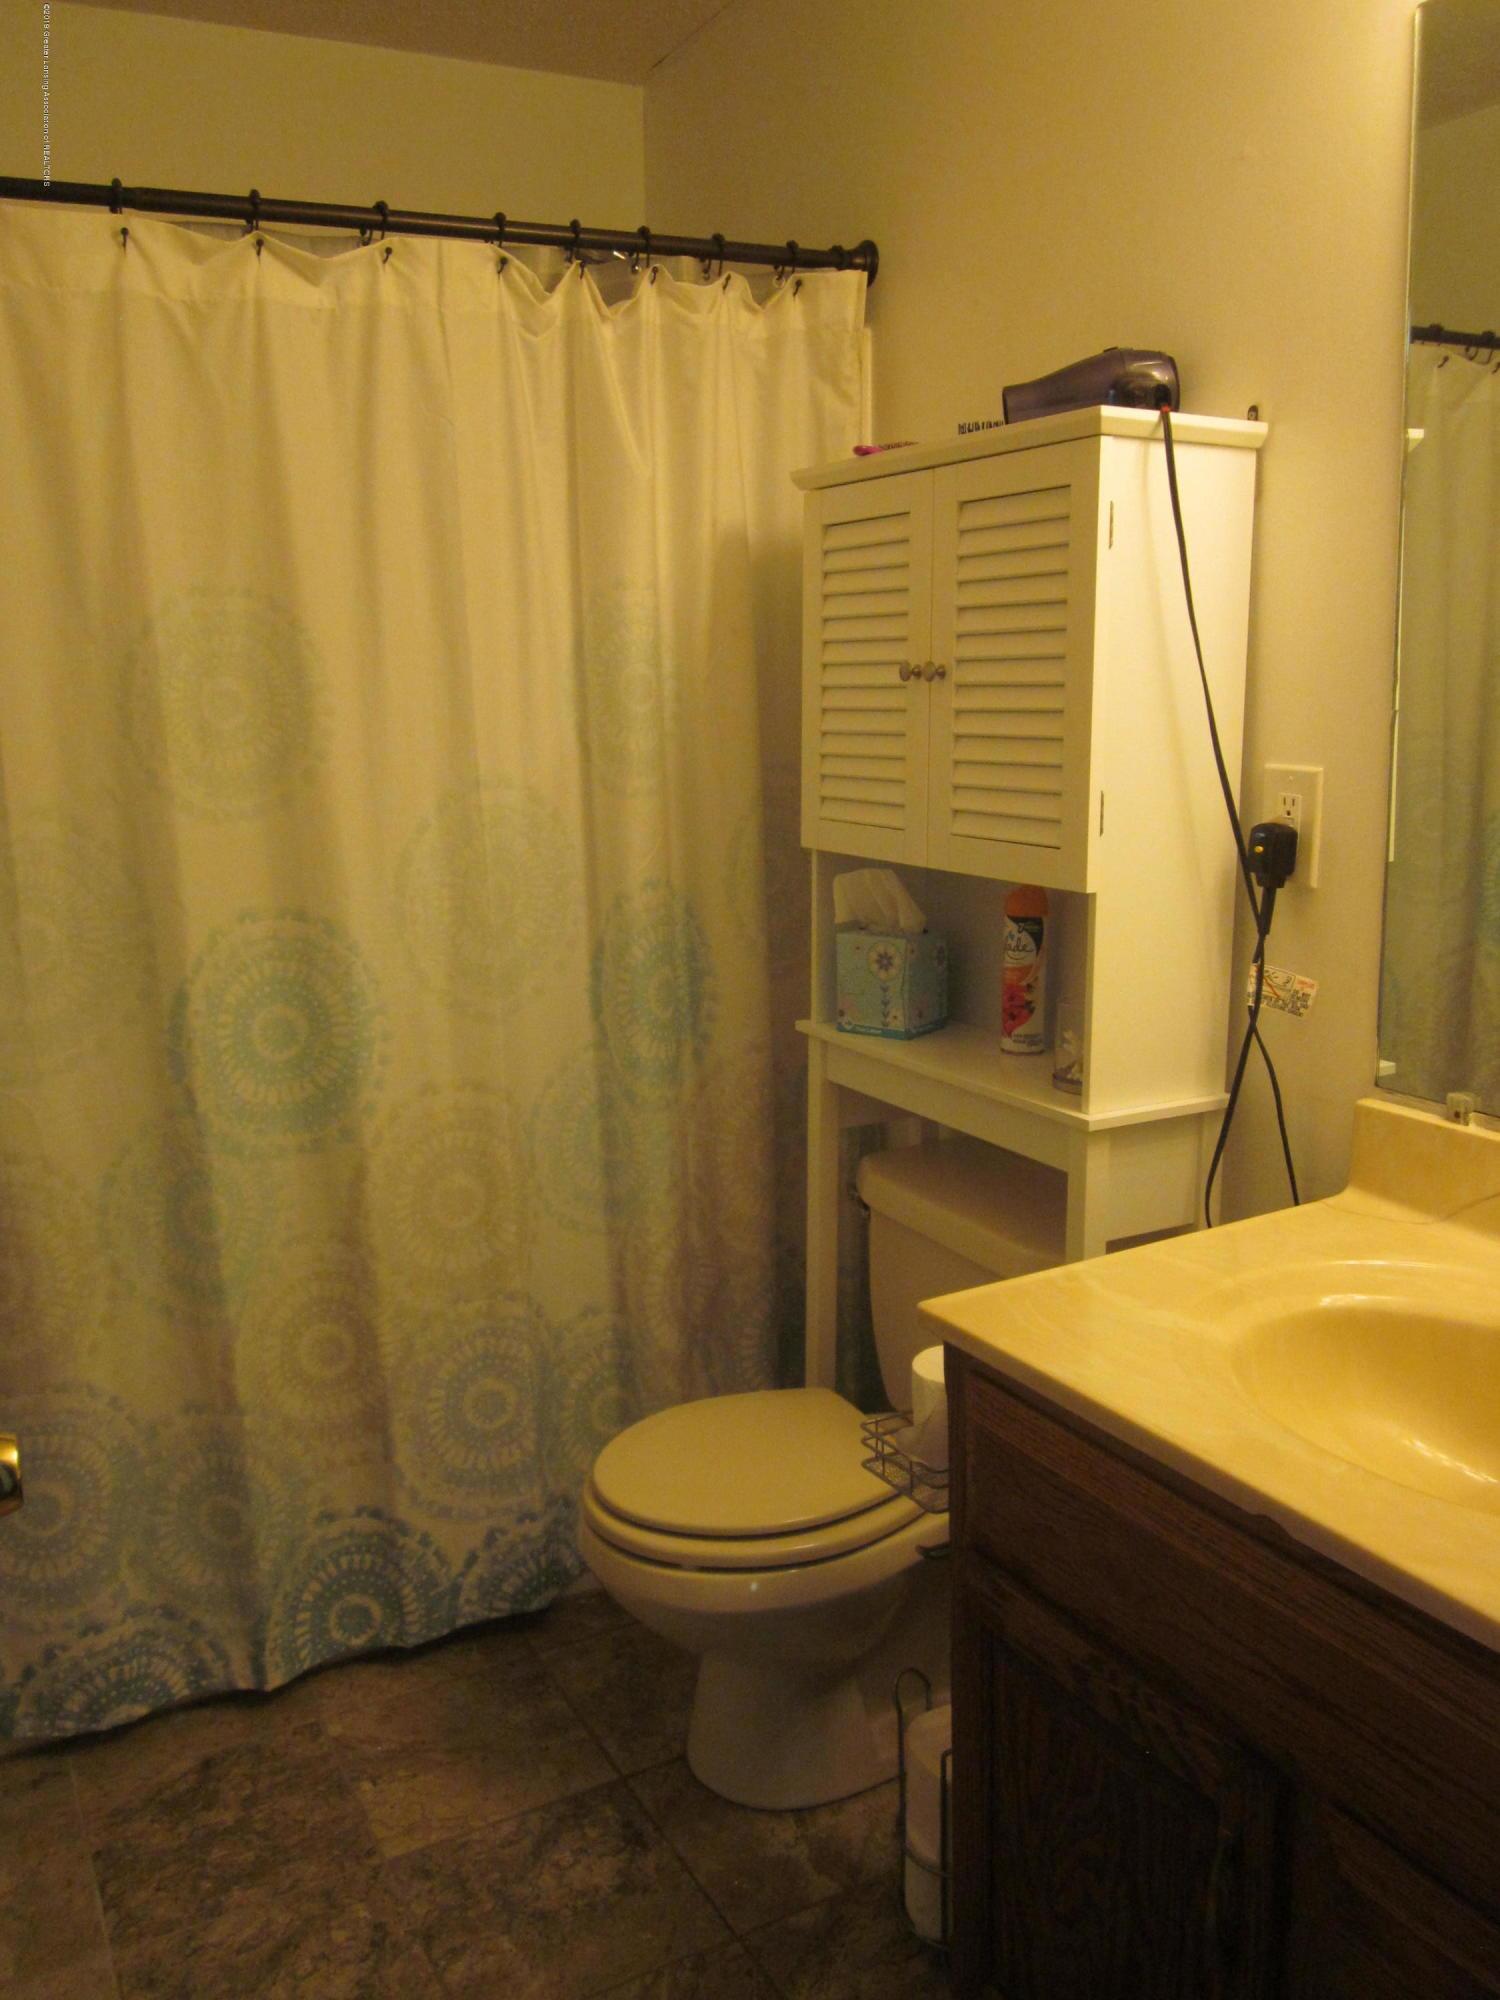 535 S Magnolia Ave - Bathroom - 10